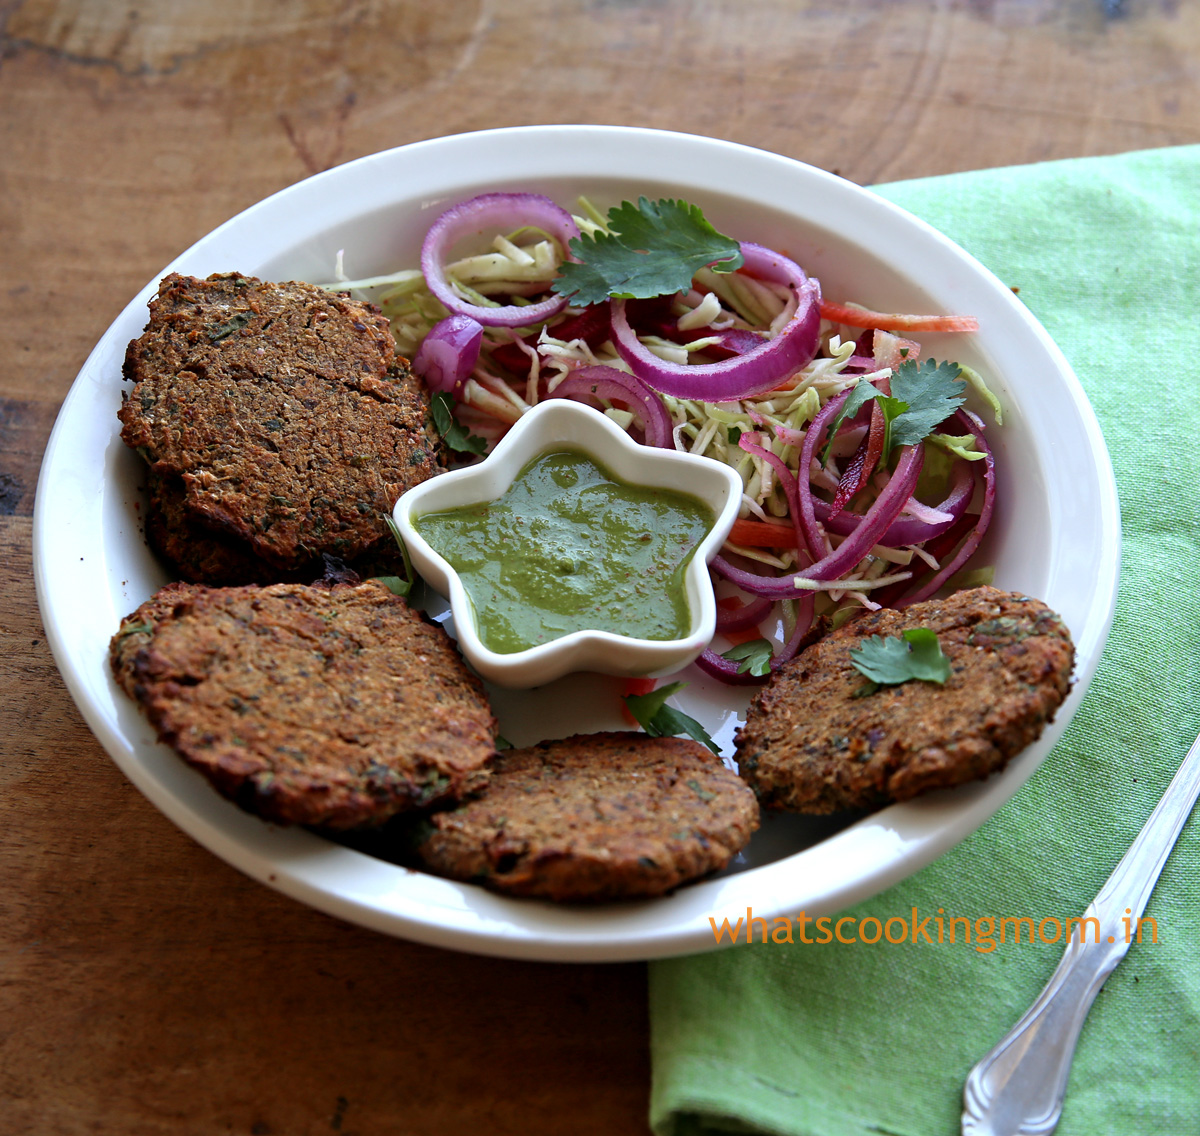 kale Chane Kebab recipe - high protein snack, appetizer, healthy snack for kids, vegetarian party snacks